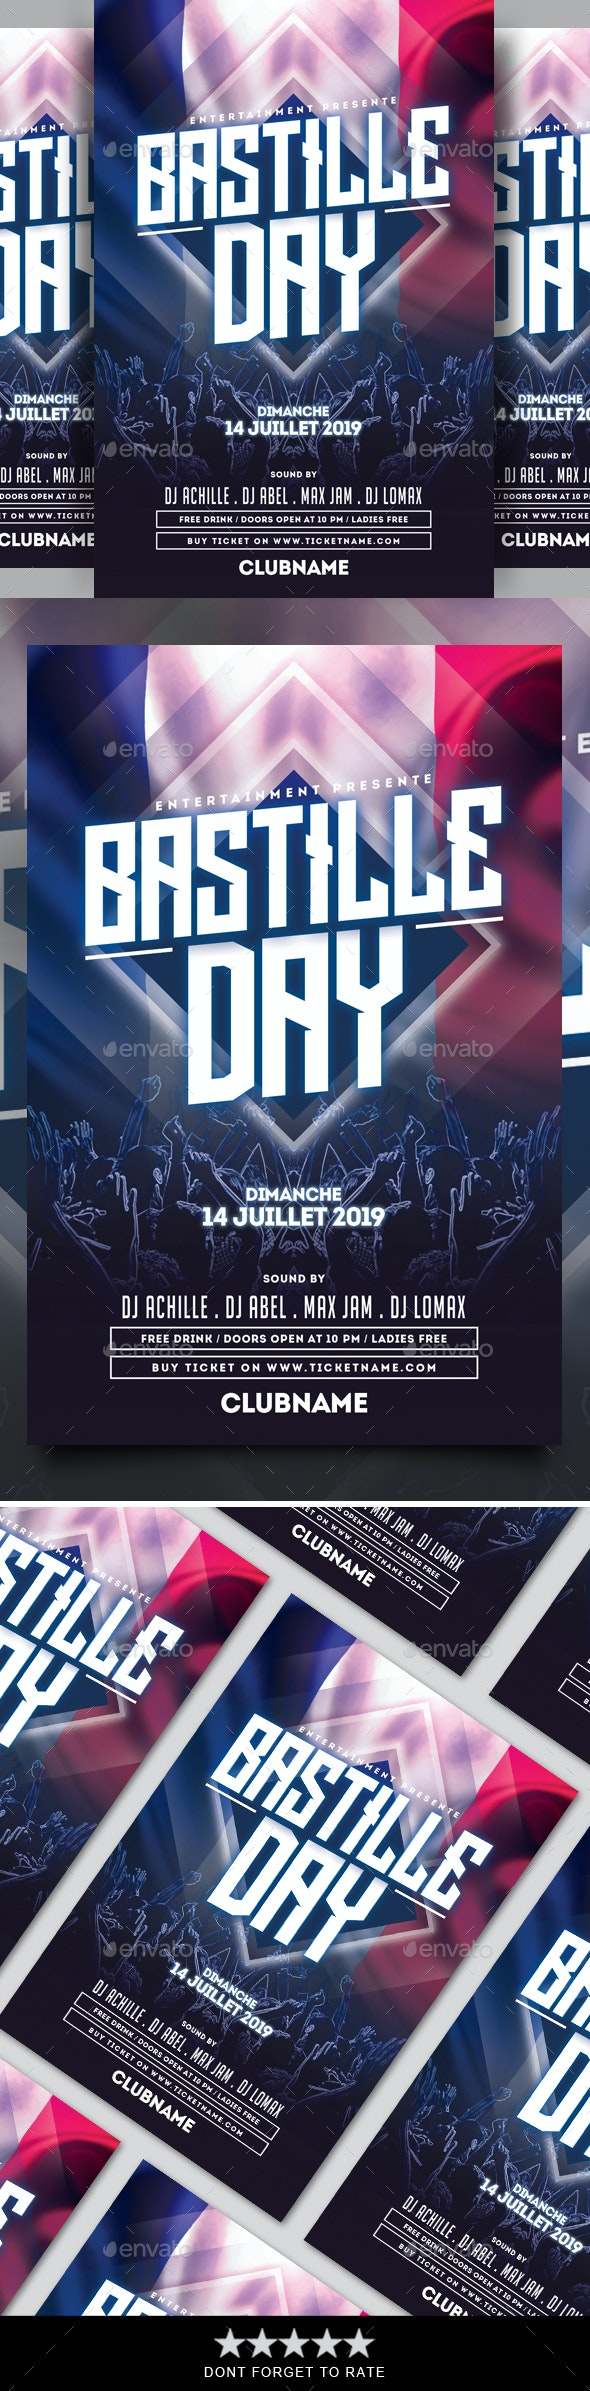 Bastille Day Flyer - Events Flyers